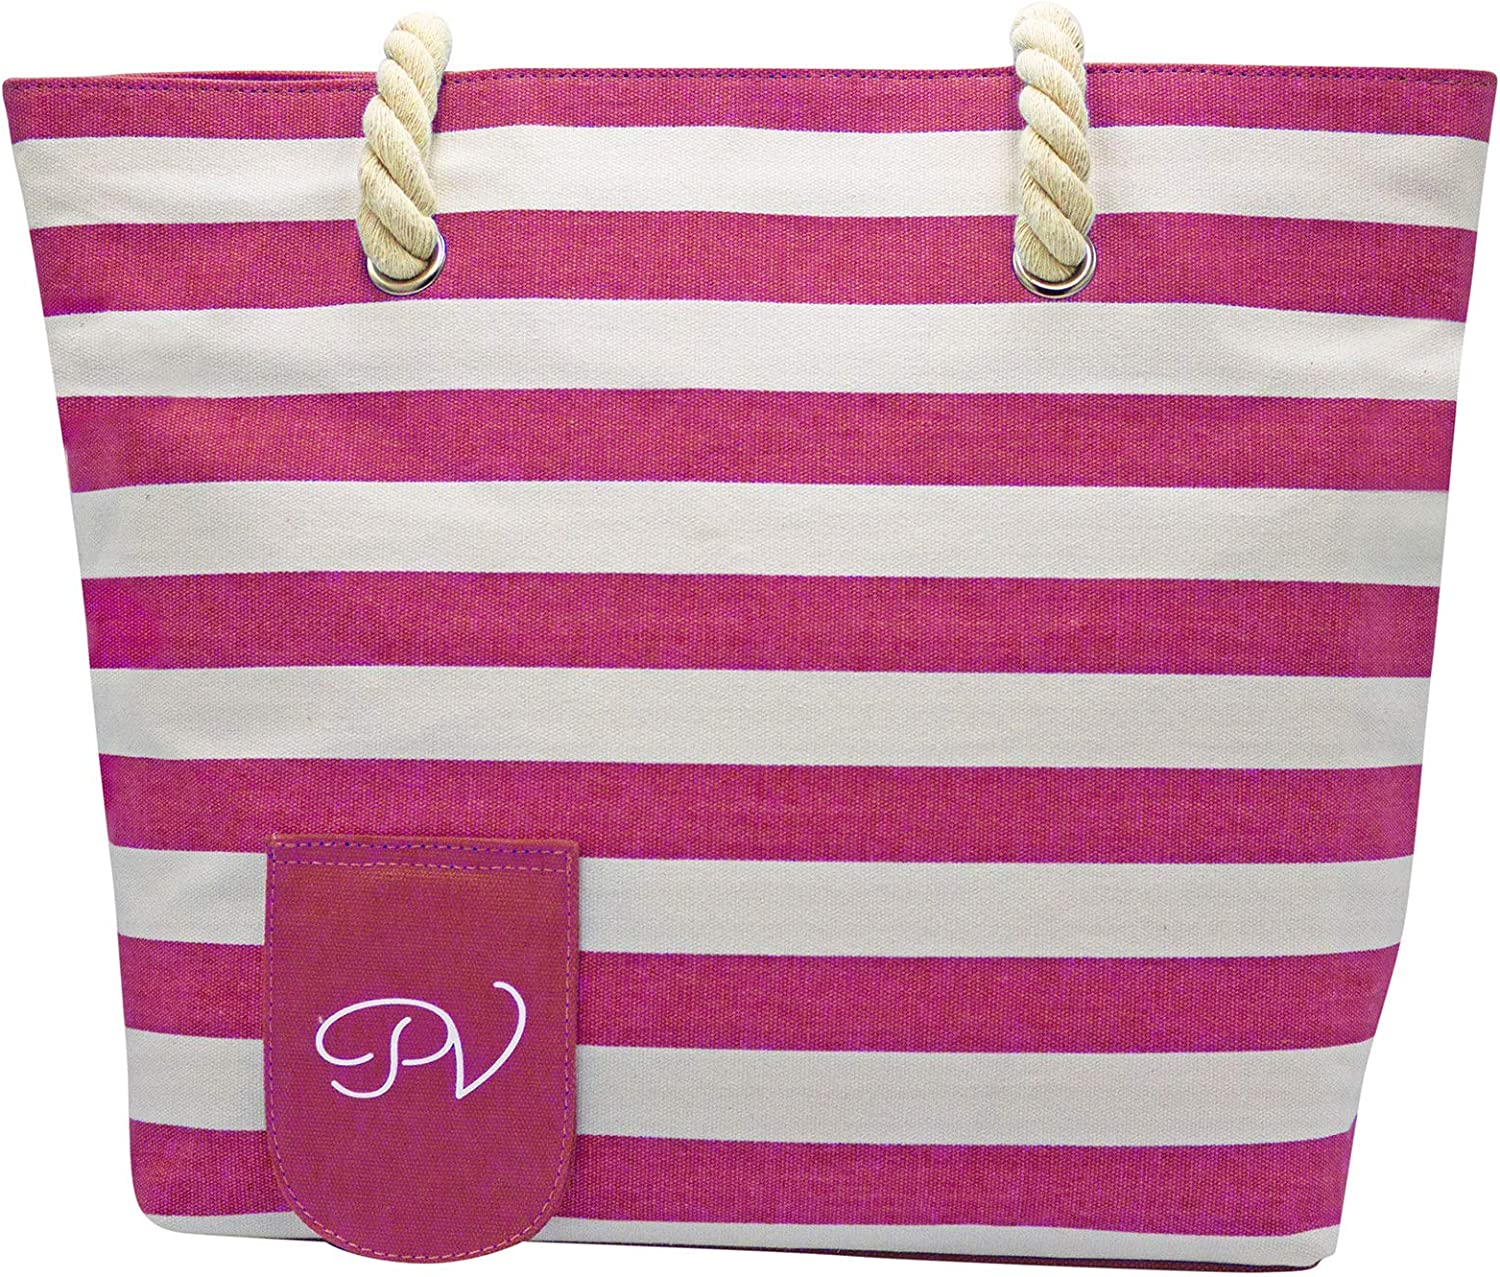 PortoVino Beach Wine Purse (Blue/White) - Beach Tote with Hidden, Insulated Compartment, Holds 2 Bottles of Wine! / Great Gift! / Happiness Guaranteed! Pink & White